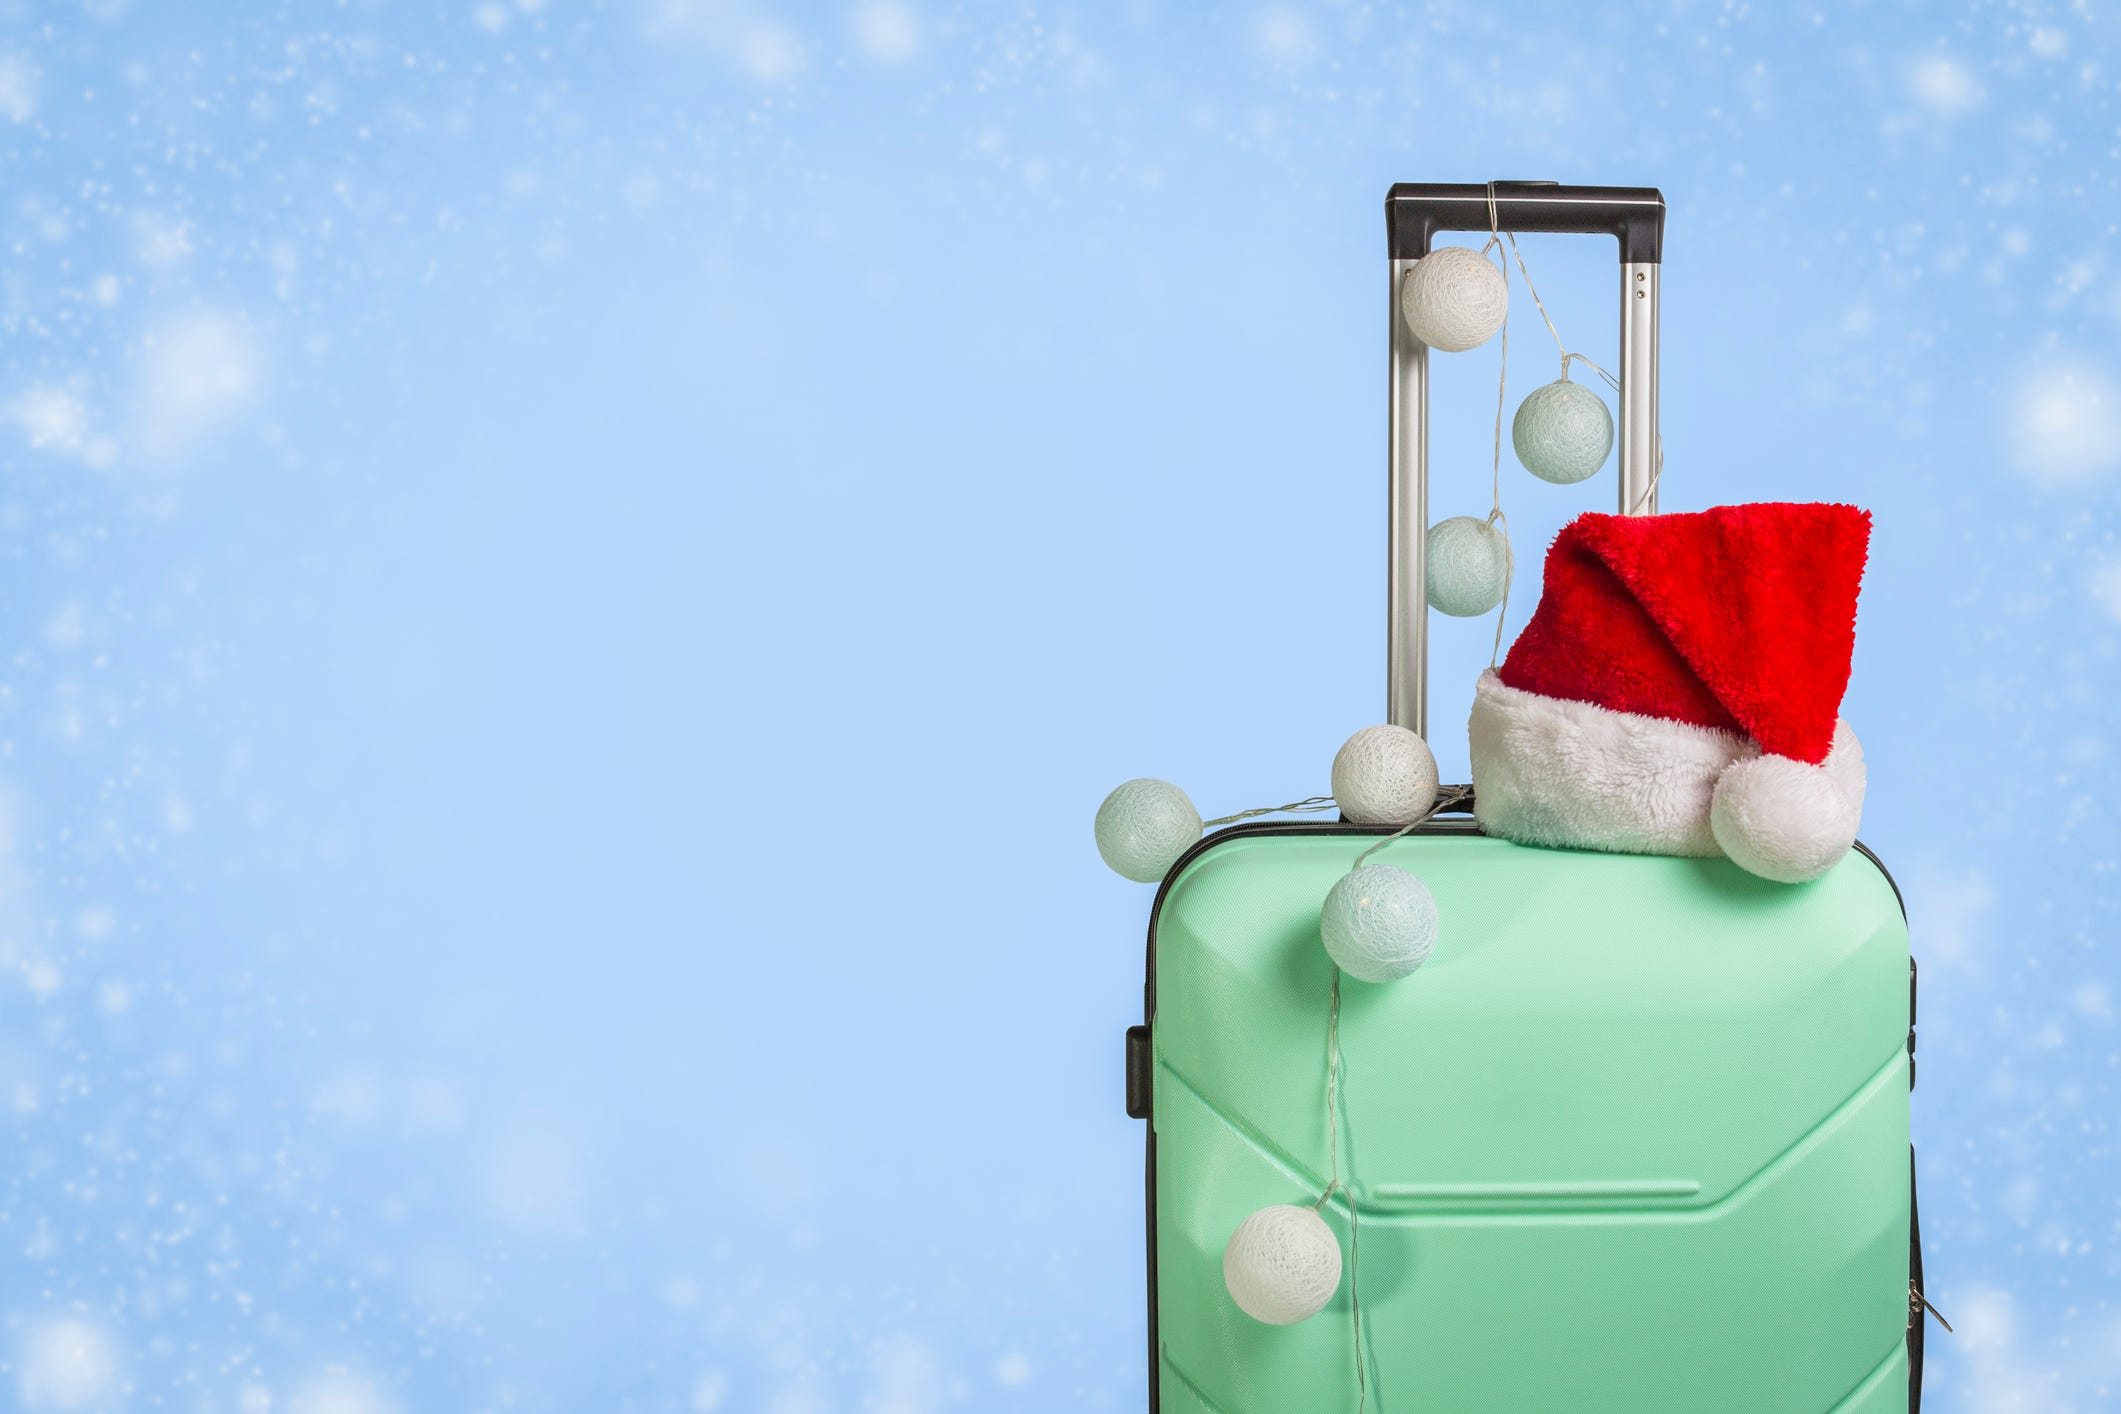 8 do's and don'ts ahead of your holiday trip